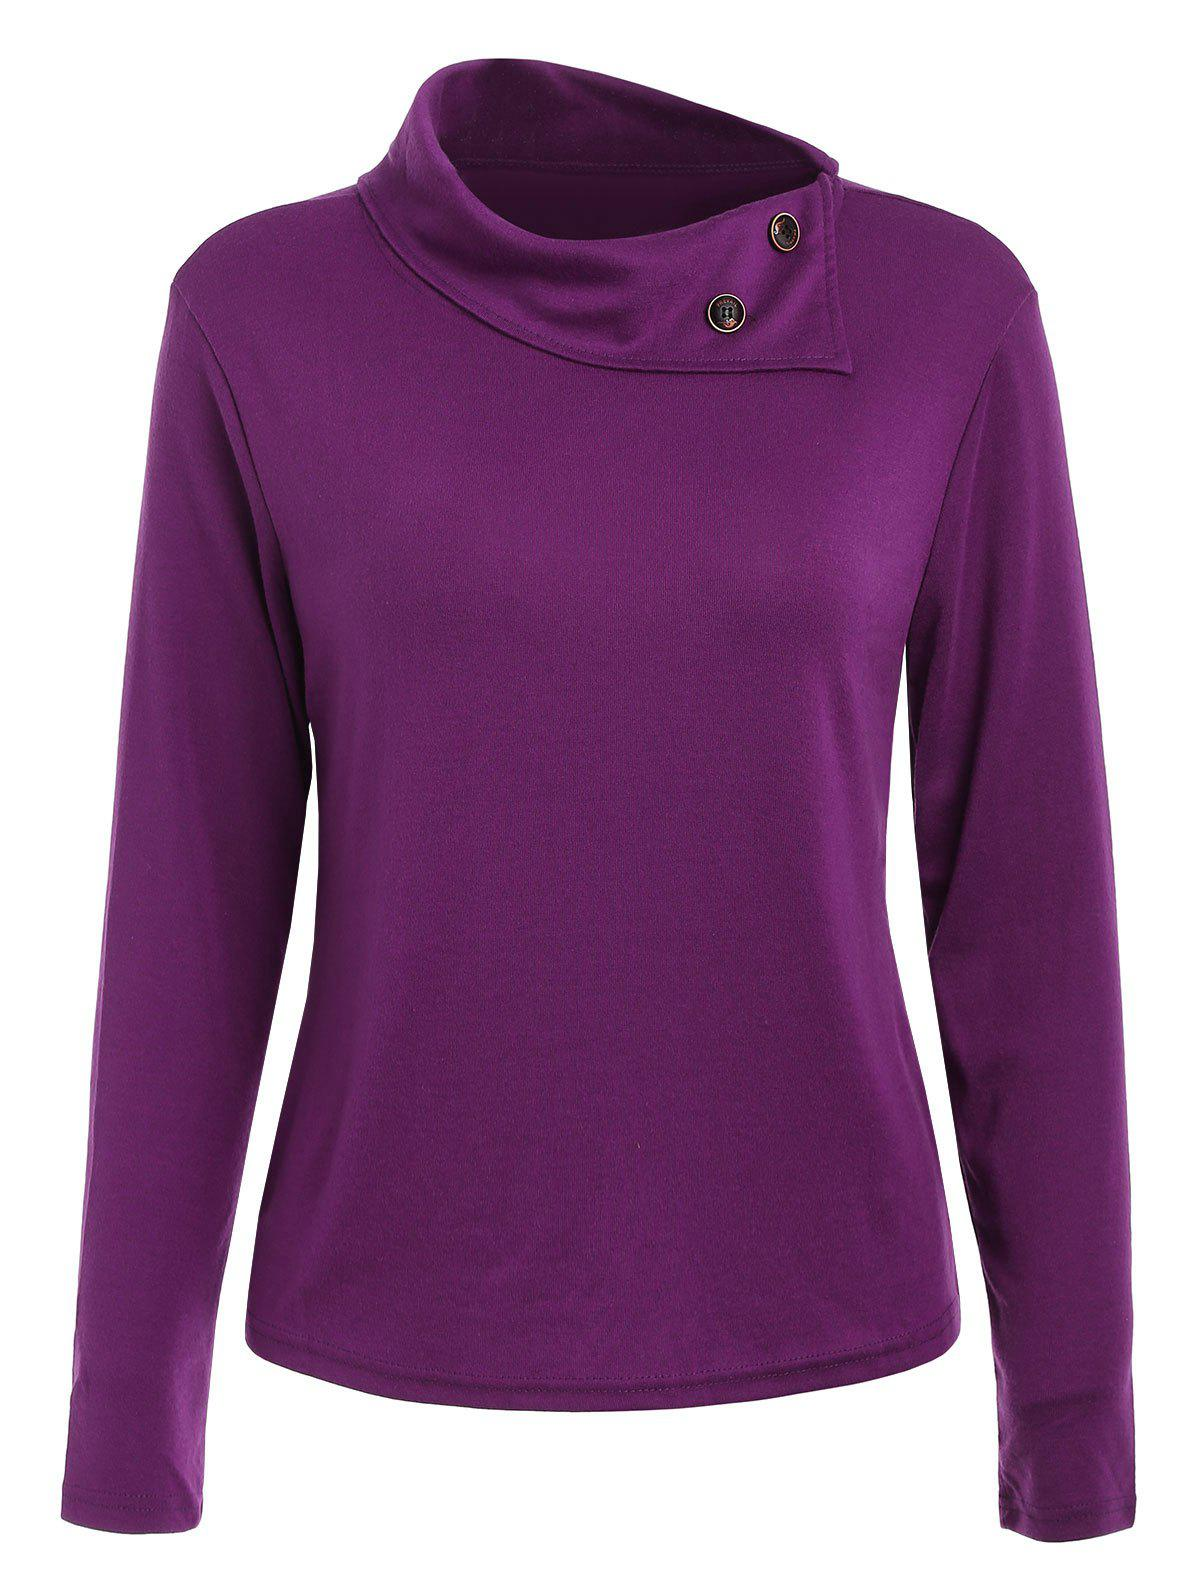 Unique Casual Buttoned Cowl Neck Solid Color Long Sleeve T-Shirt For Women